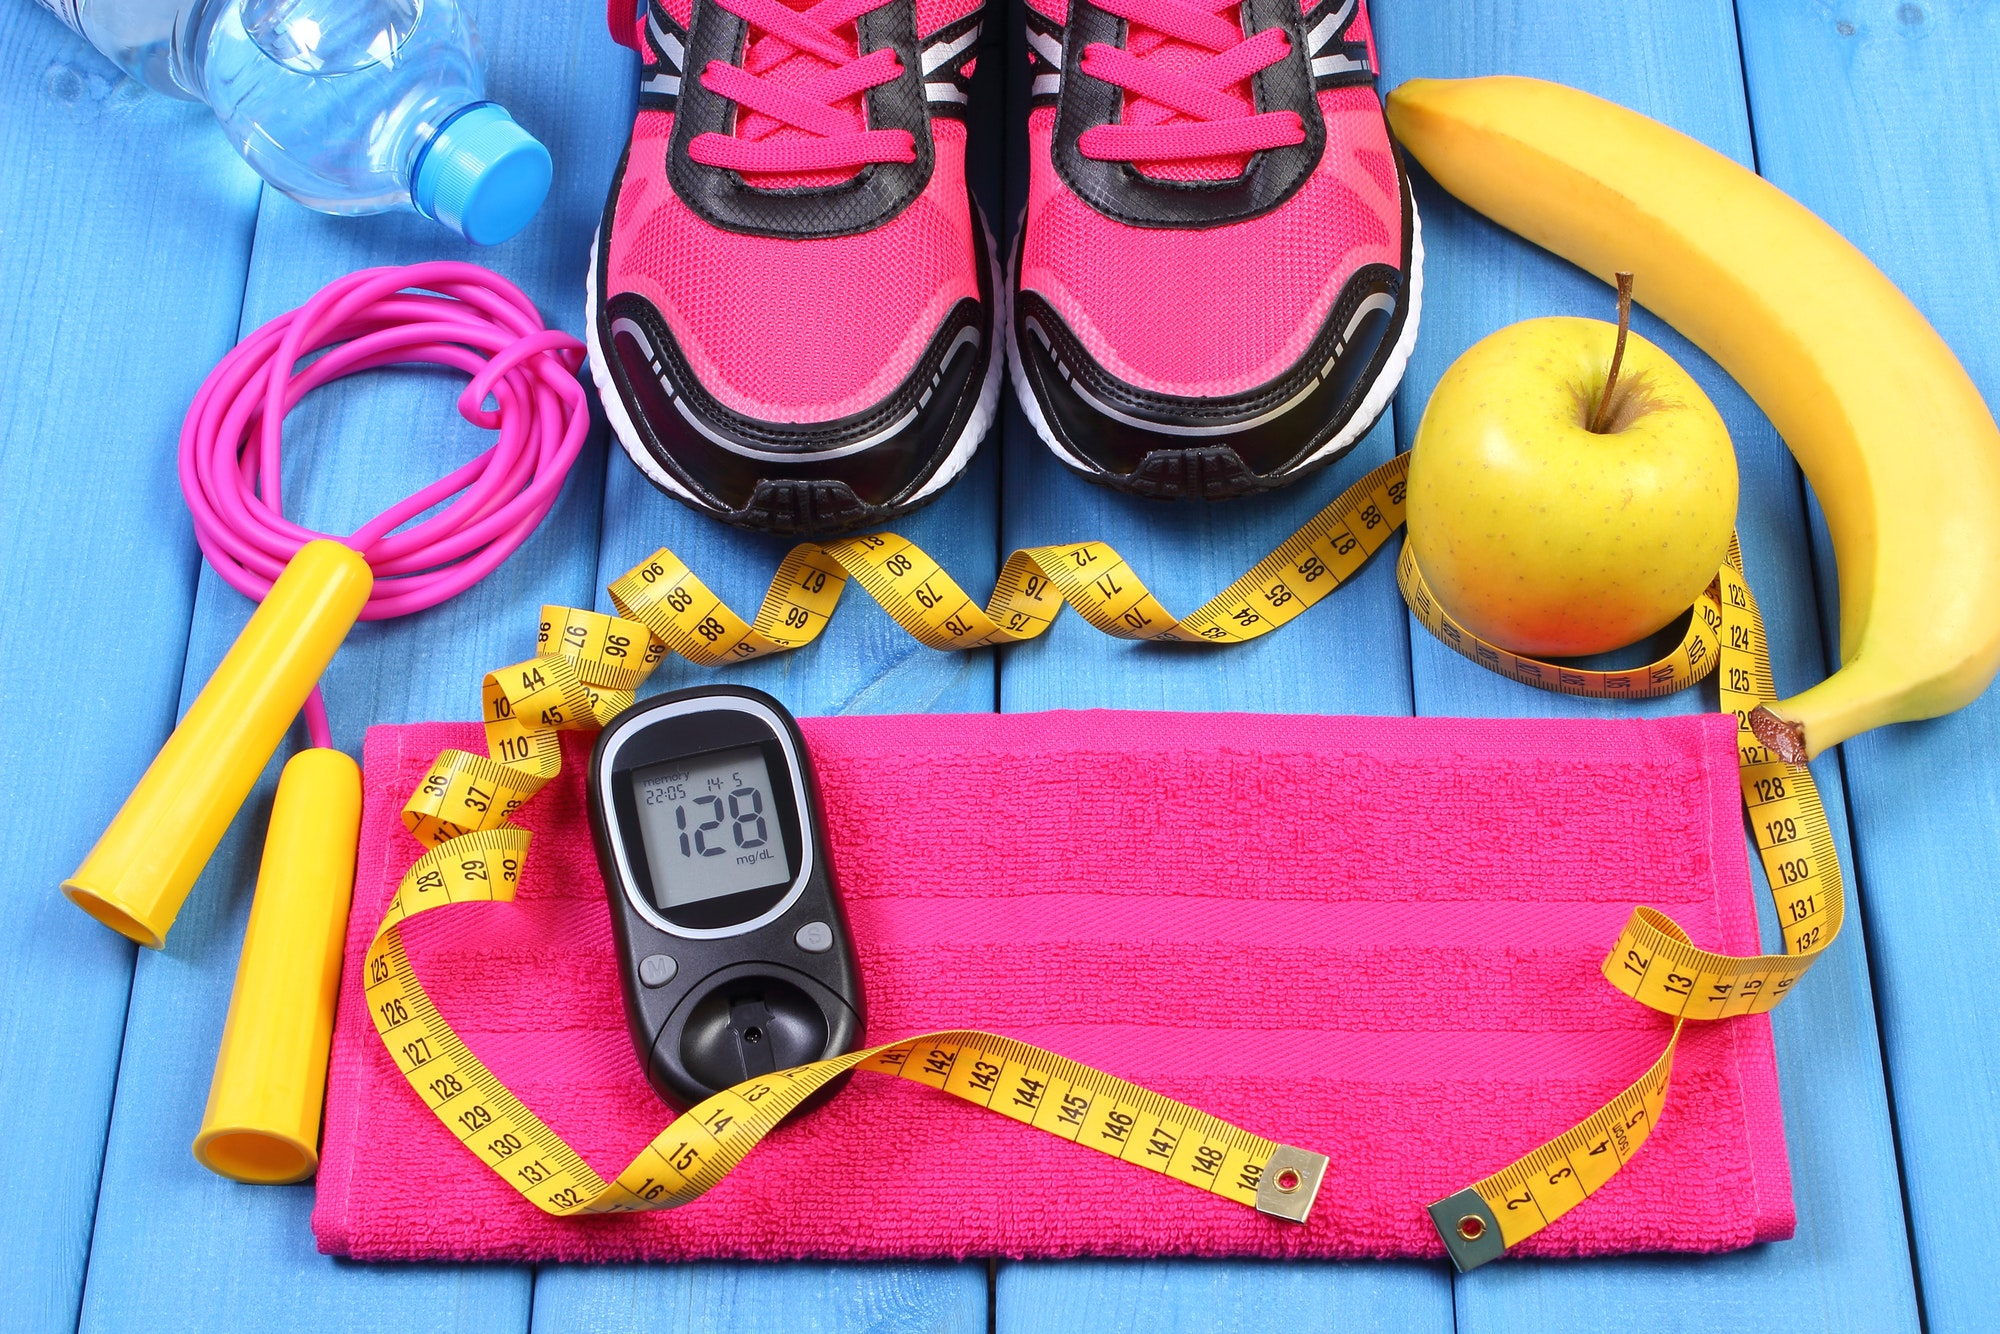 Glucometer, sport shoes, fresh fruits and accessories for fitness